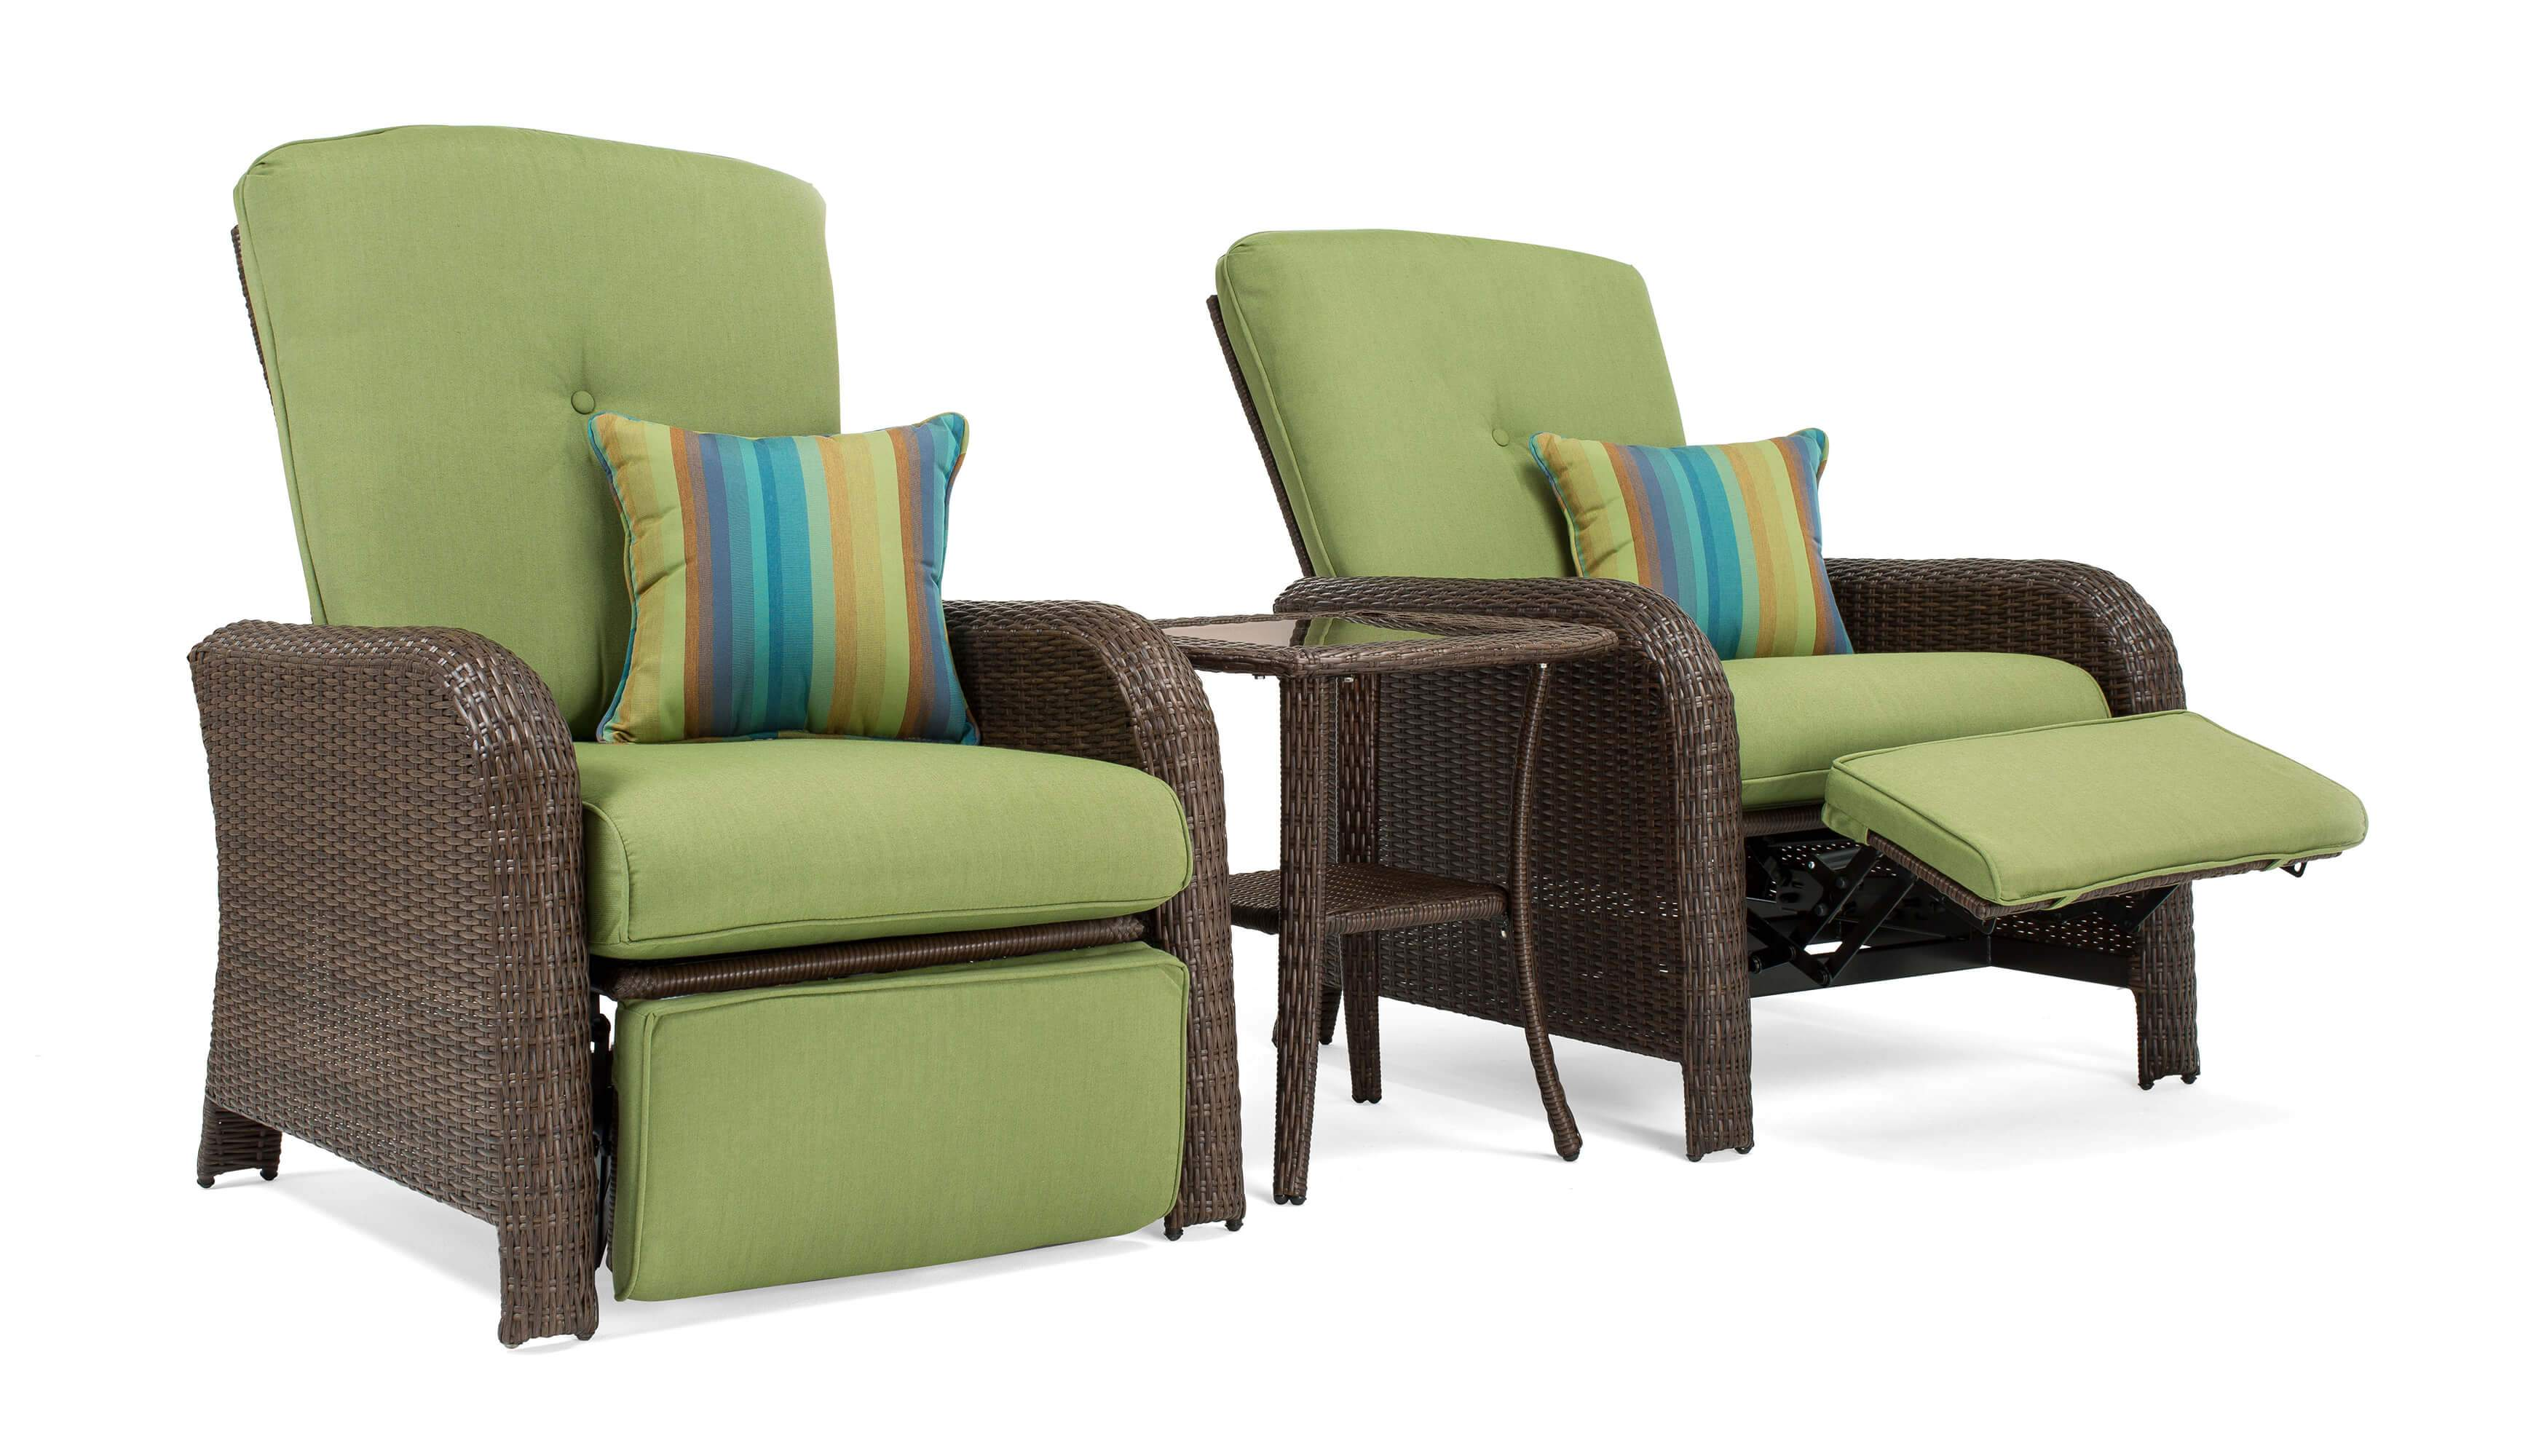 Strange Sawyer Patio Recliner Set Includes 2 Recliners And Side Evergreenethics Interior Chair Design Evergreenethicsorg